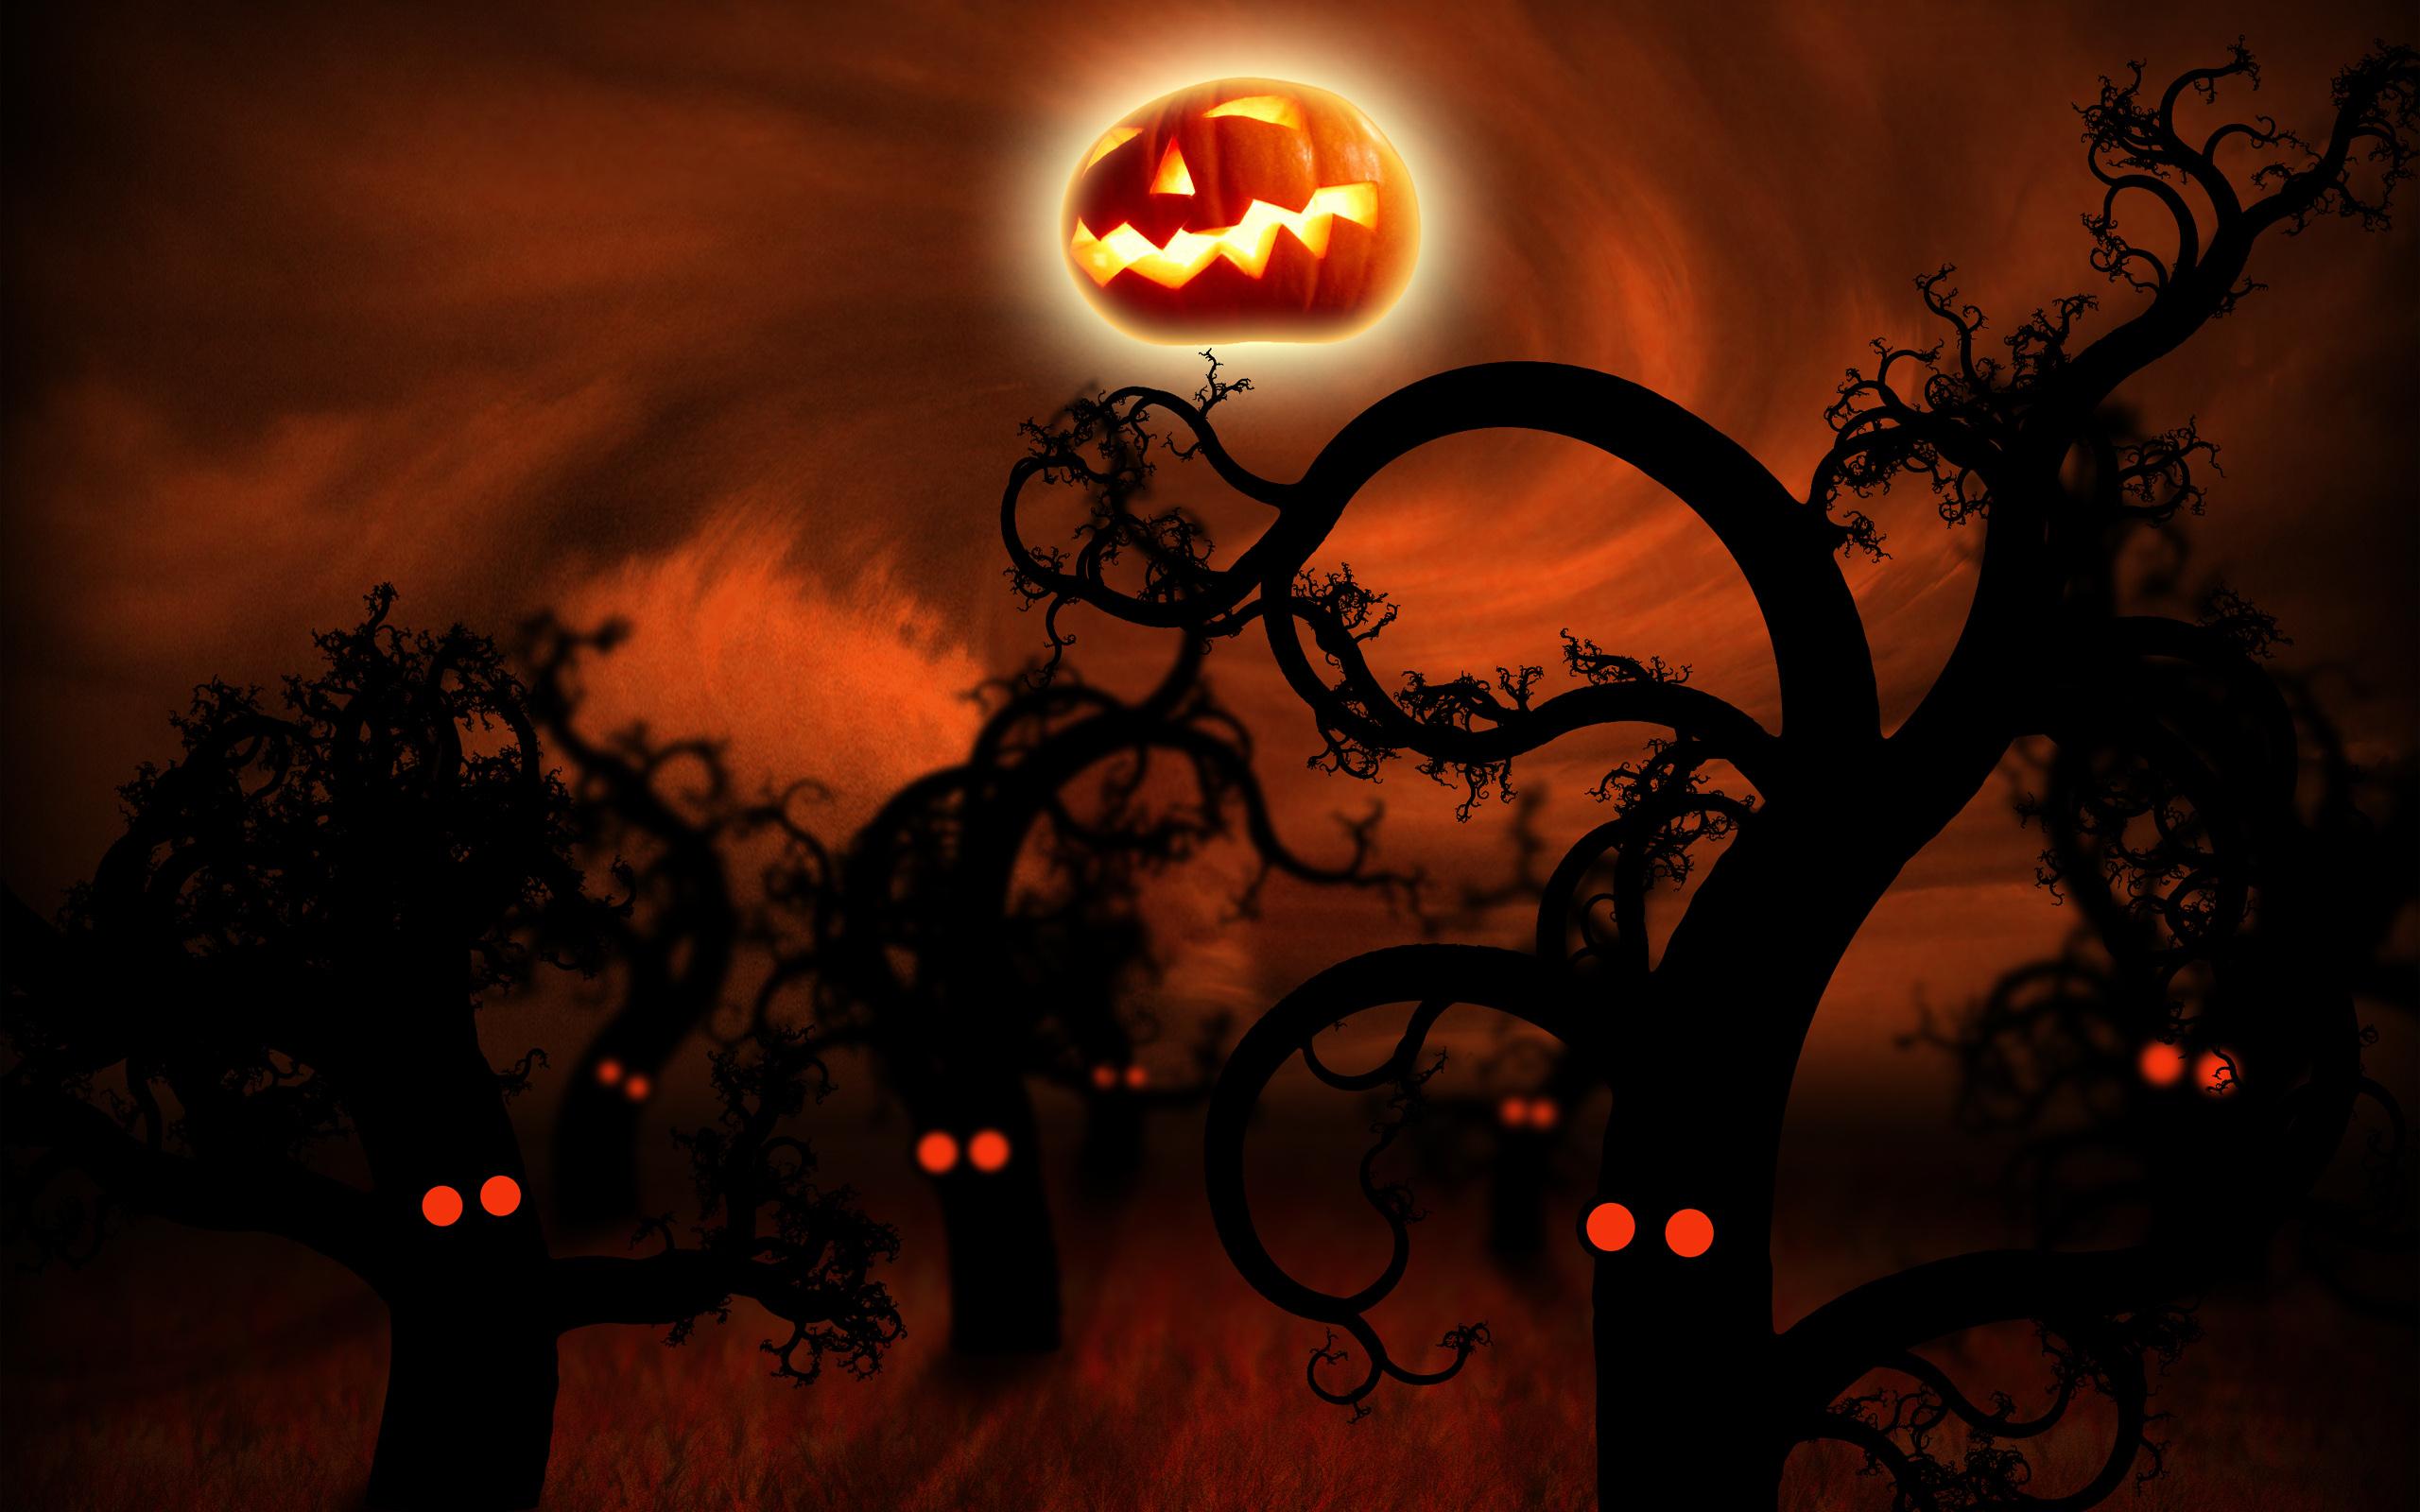 HD Halloween wallpapers for Desktops and Smart phones